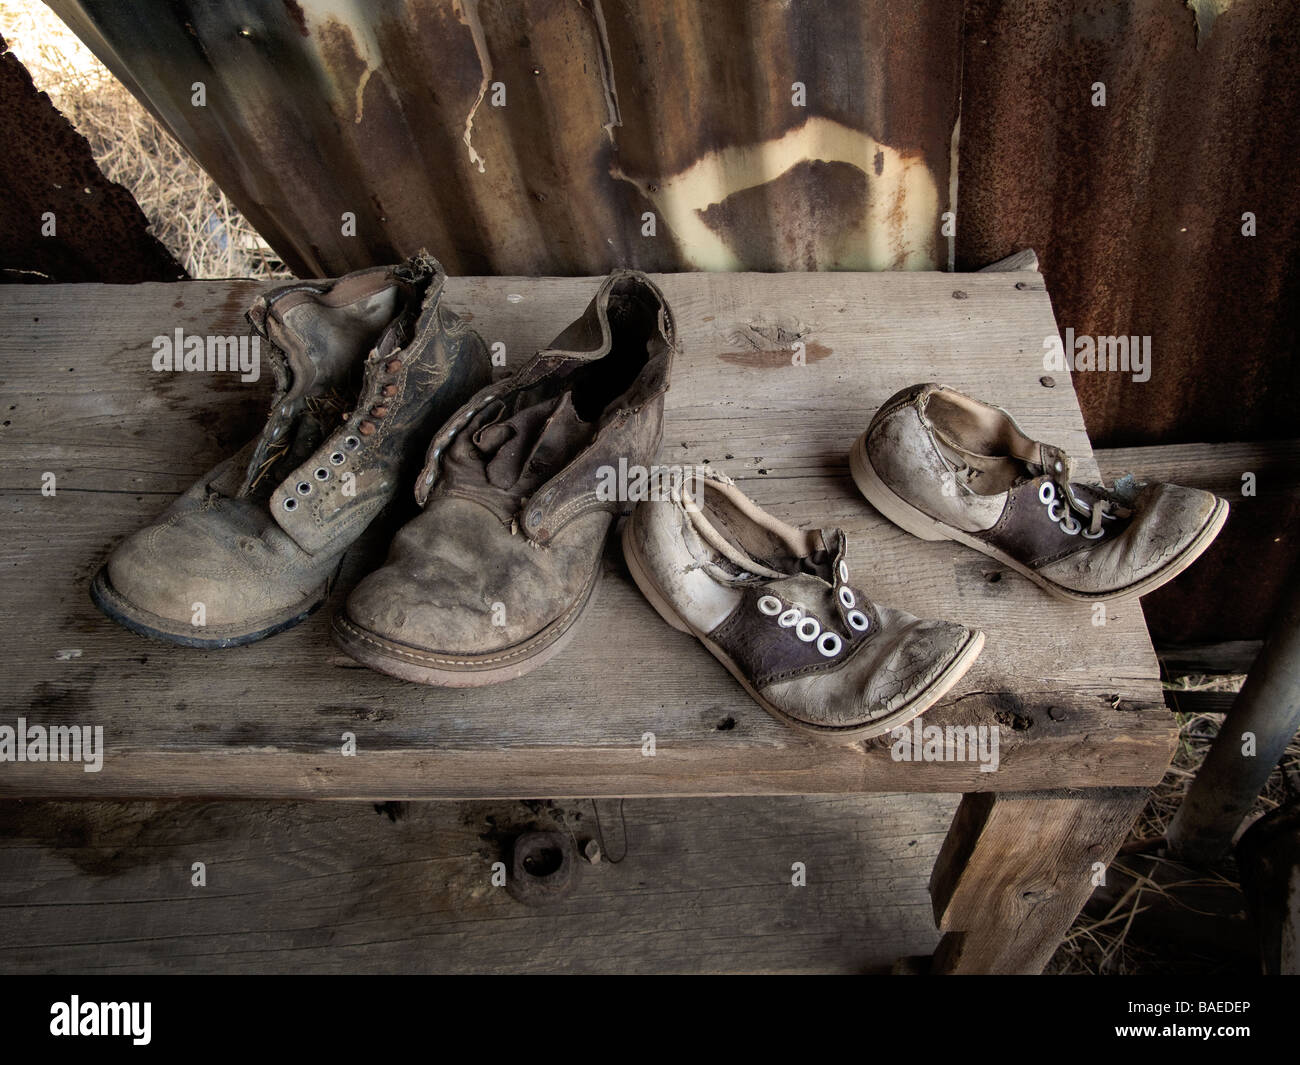 Old shoes on a bench - Stock Image